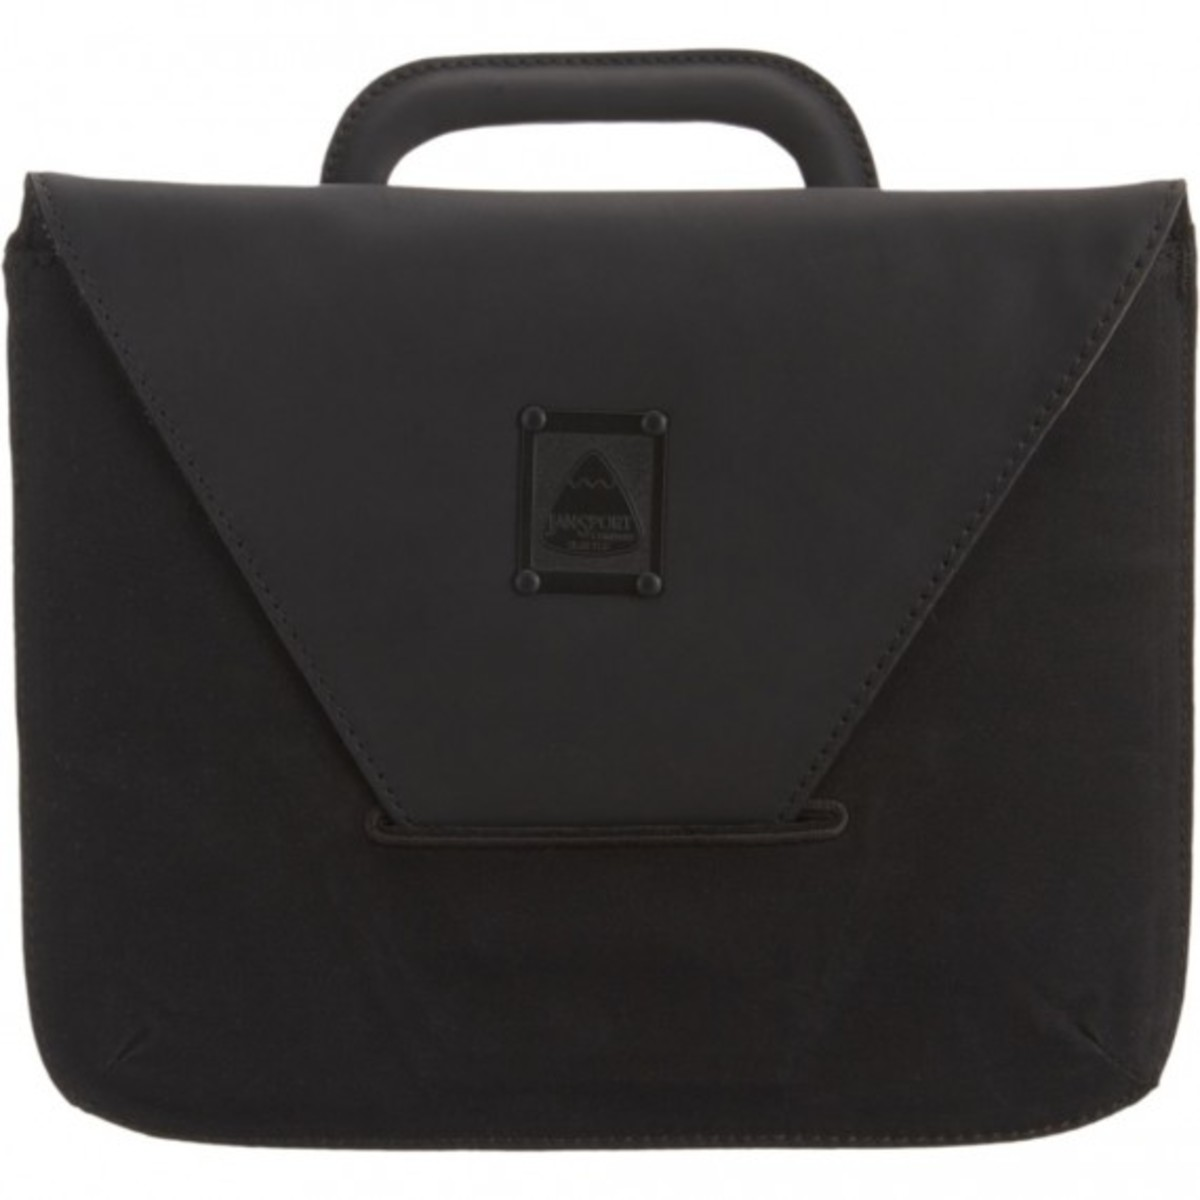 barneys-jansport-heritage-carbon-collection-envelope-tablet-01